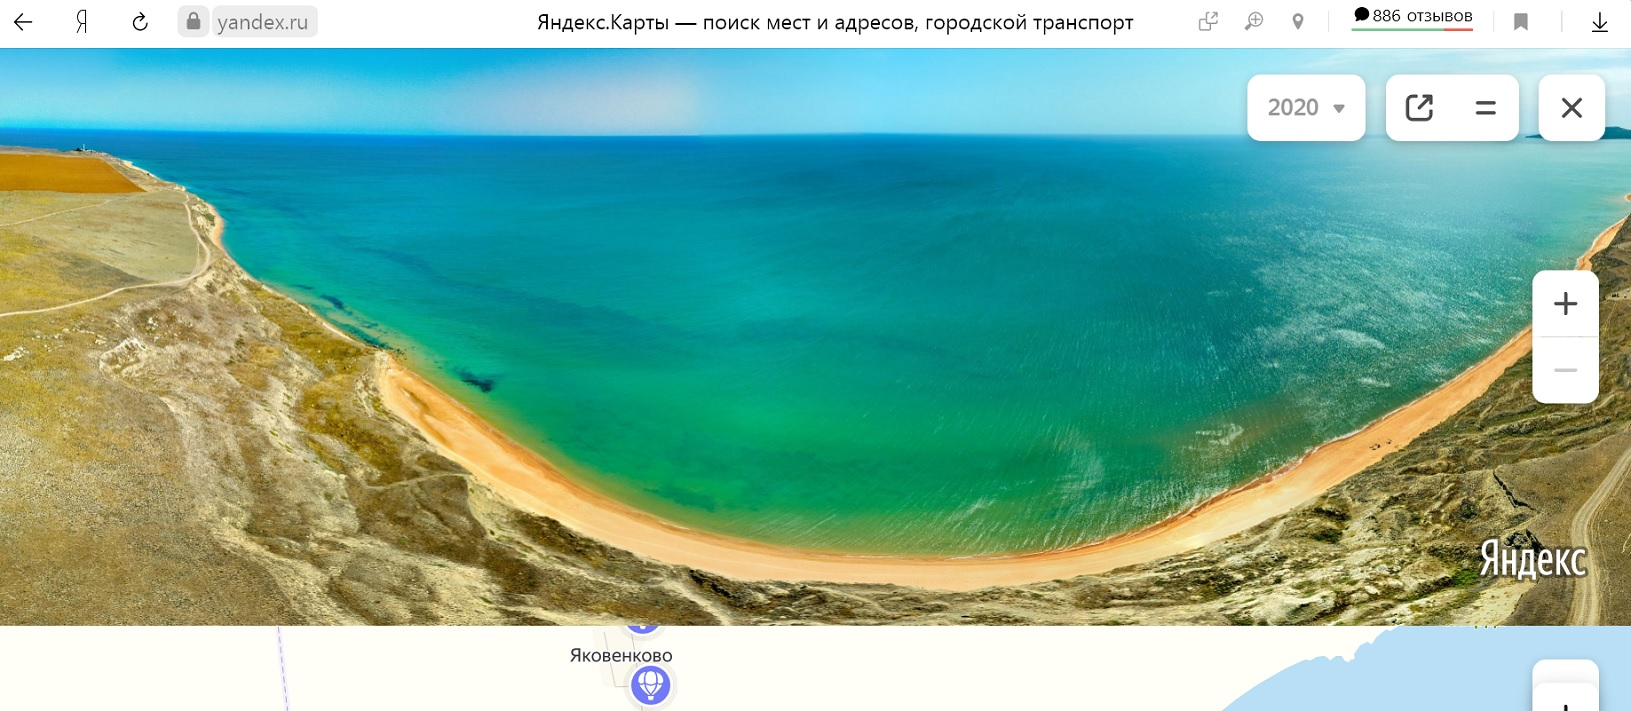 kerch bleck sea